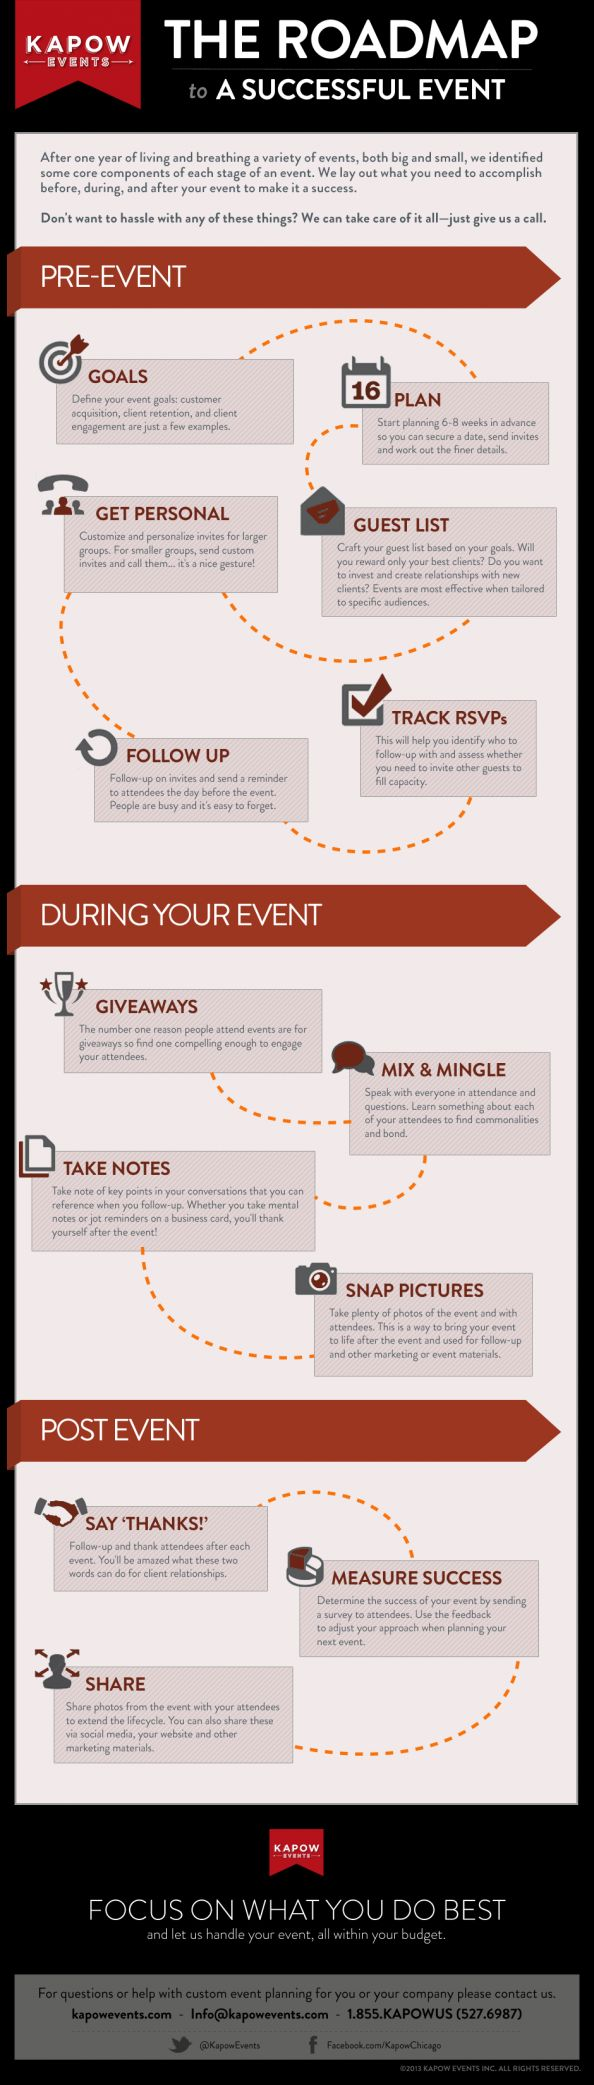 Best EVENT PLANNING Images On Pinterest Whisky Bar - Luxury conference planning template scheme